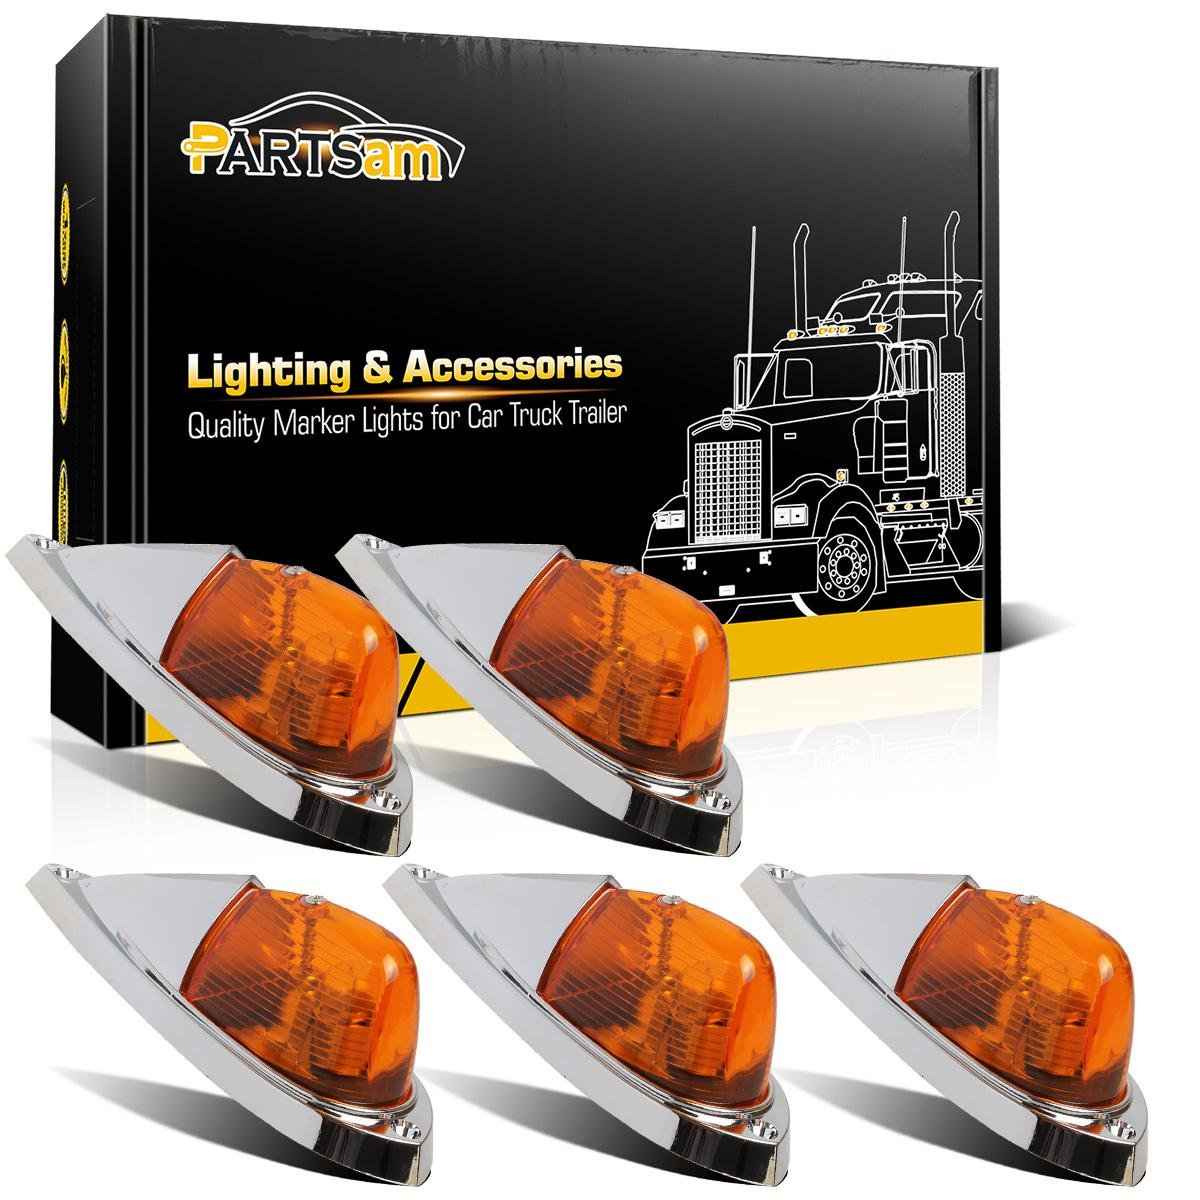 Partsam 5x Amber Cab Roof Clearance Marker Lights Kit Universal Teardrop Style Cab Light Replacement For Trucks Trailers Peterbilt Freightliner Kenworth Mack Western Star